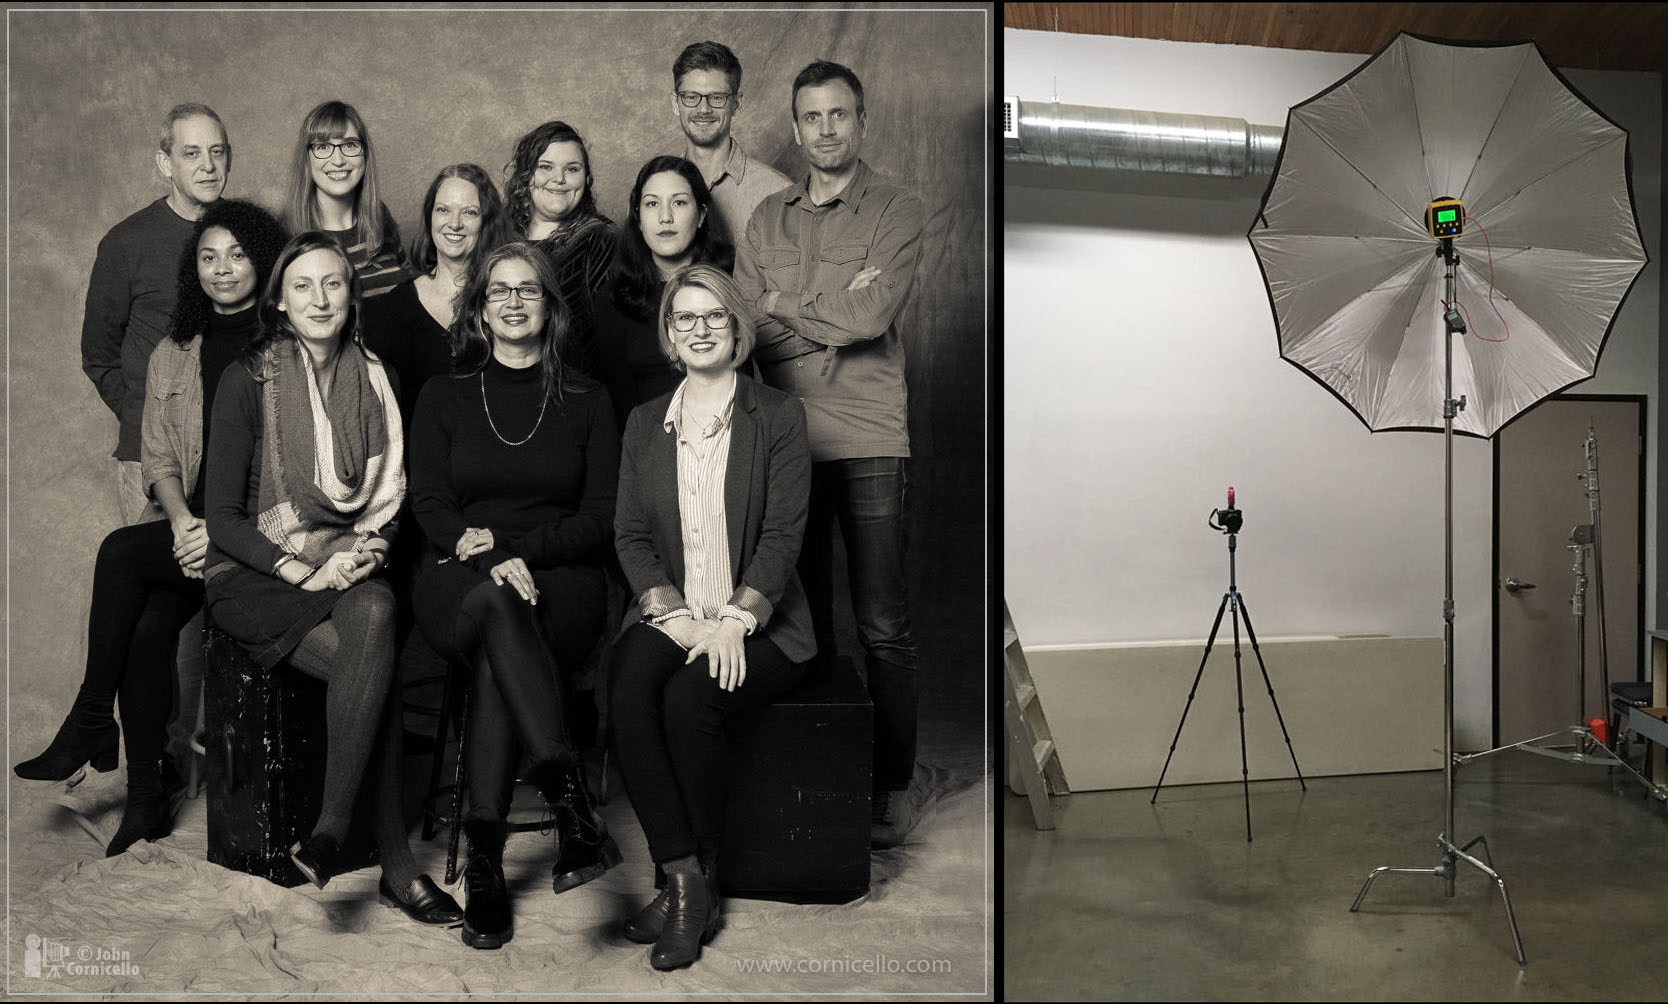 Staff photo for PCNW in Seattle lit with one Interfit Badger Unleashed strobe in a 60-inch umbrella to camera left as seen in the BTS photo.